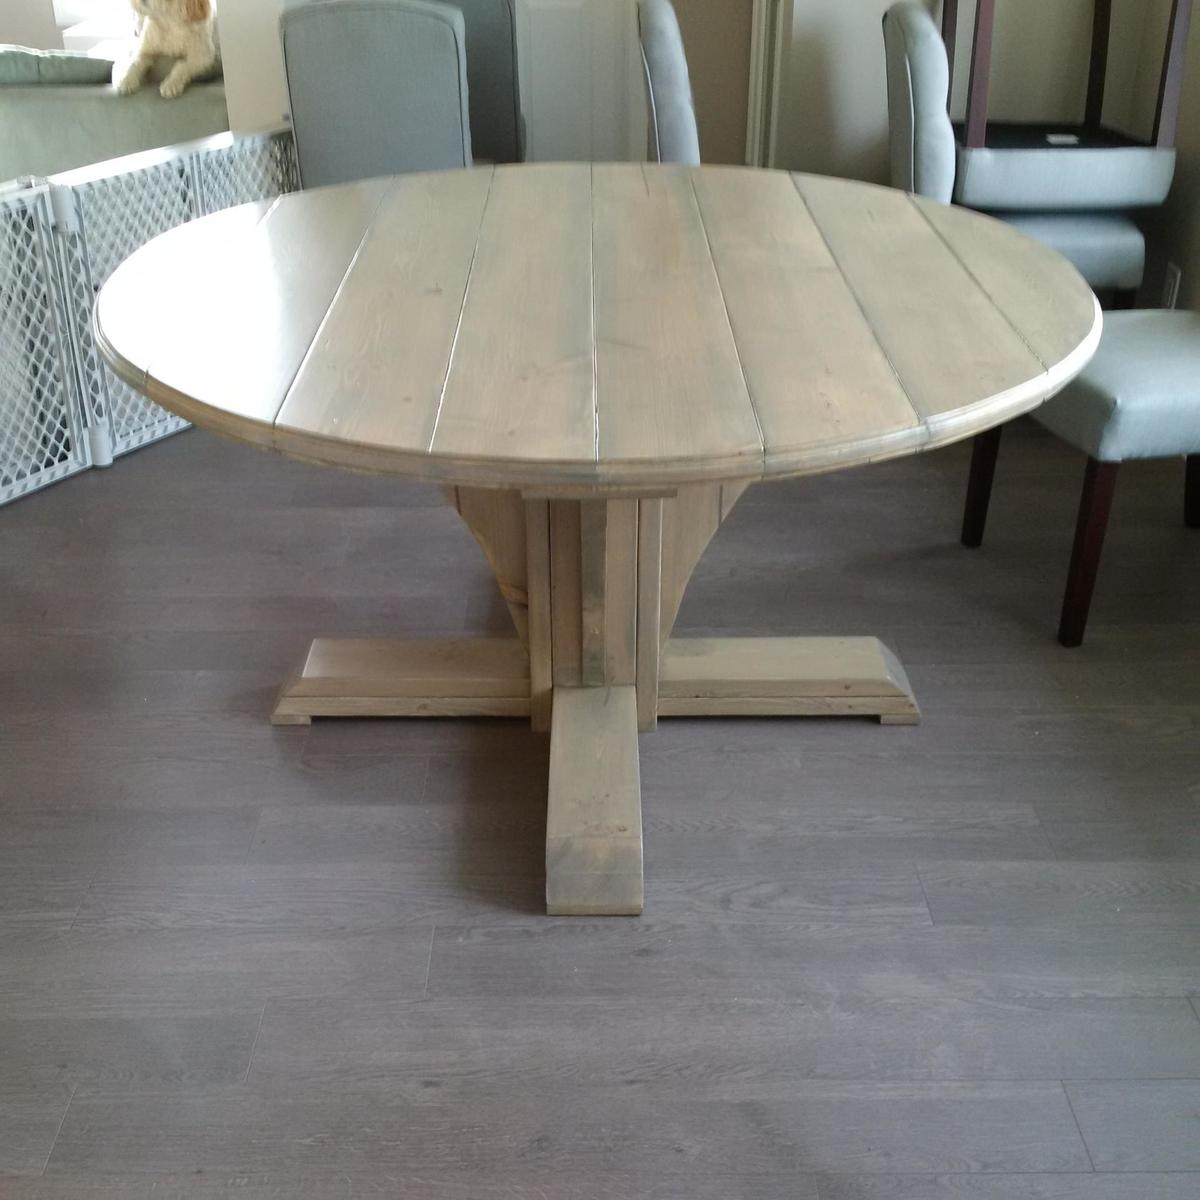 Ana White Round Farmhouse Style Table DIY Projects